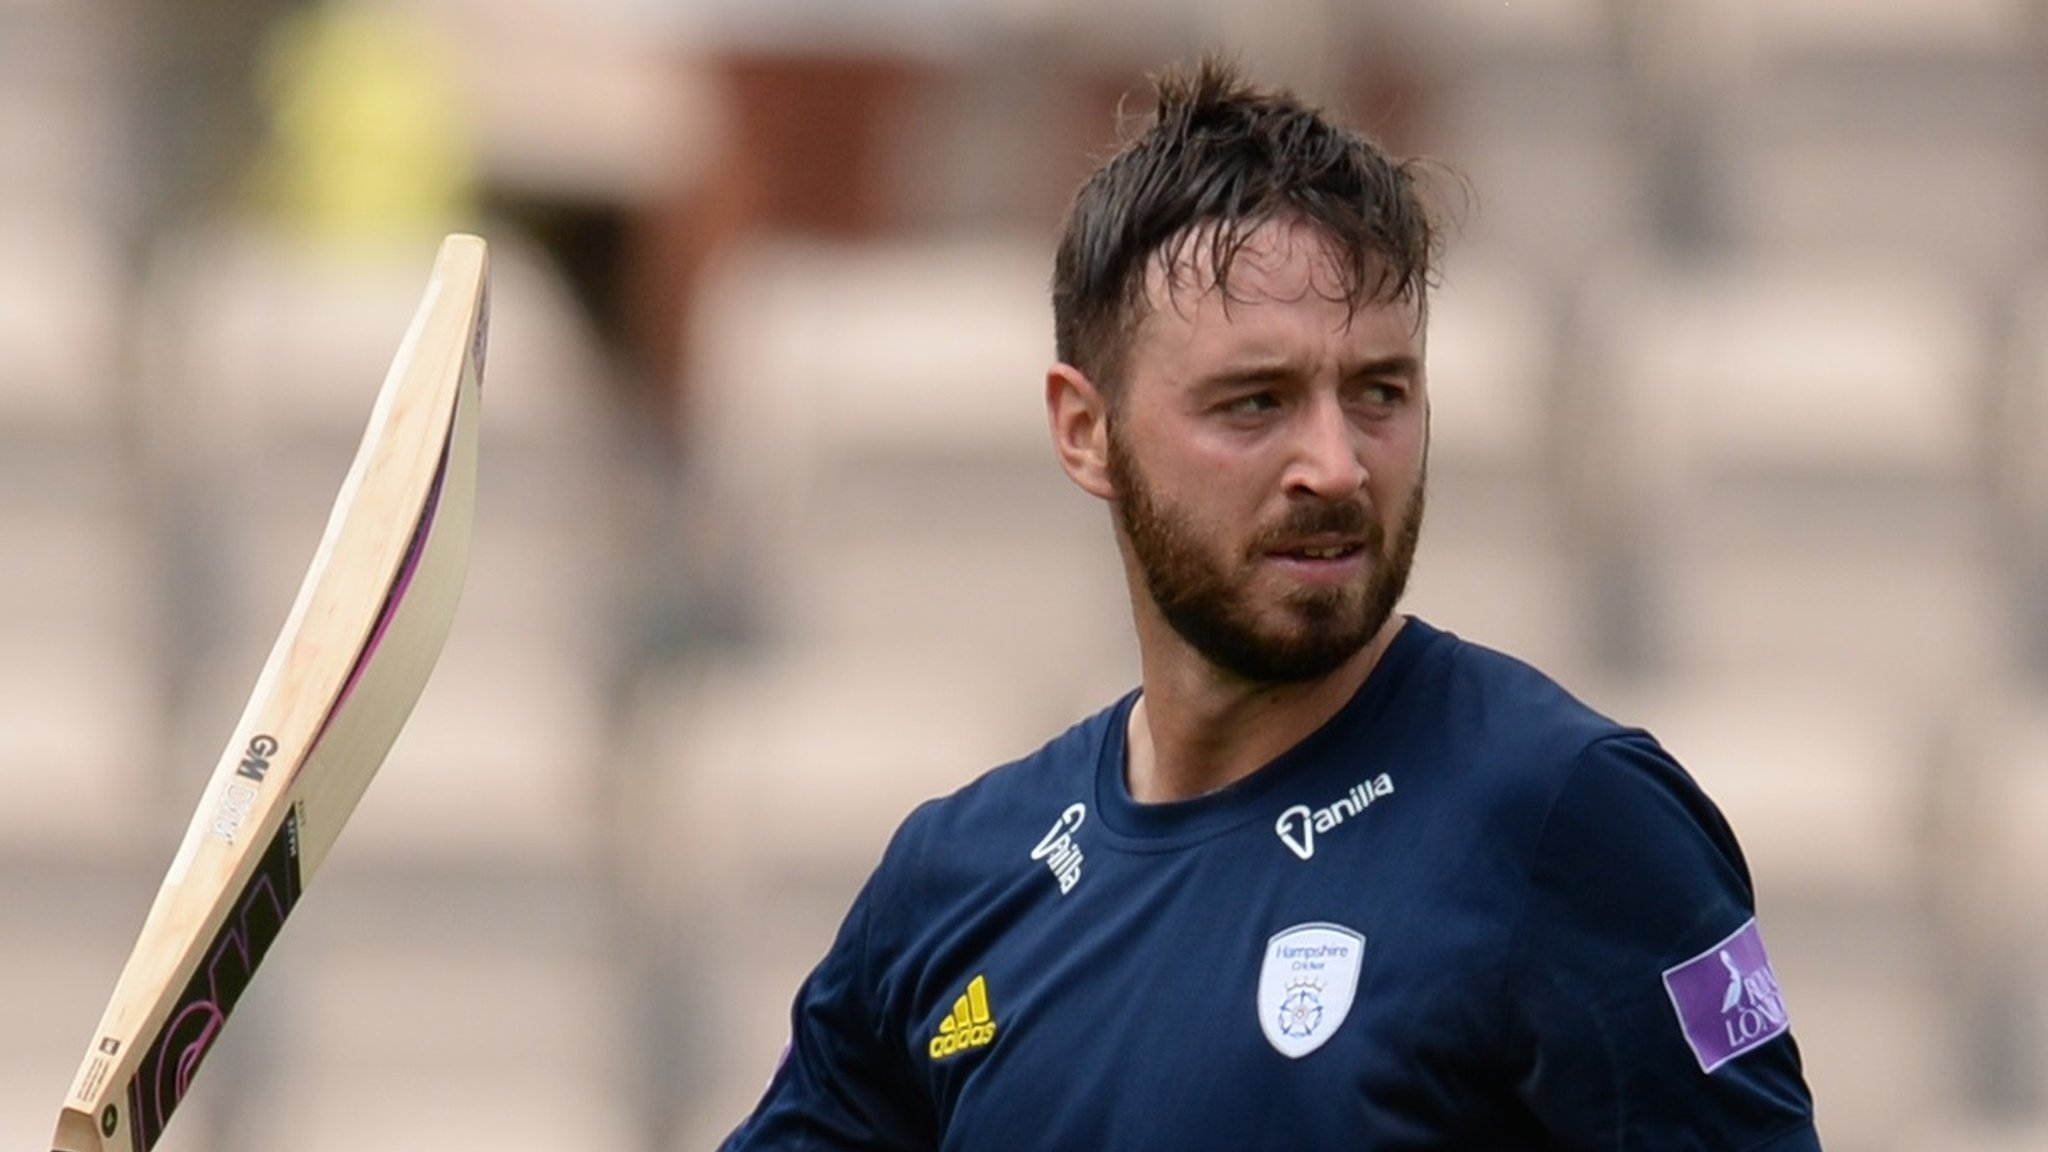 England v India: James Vince called up for deciding ODI